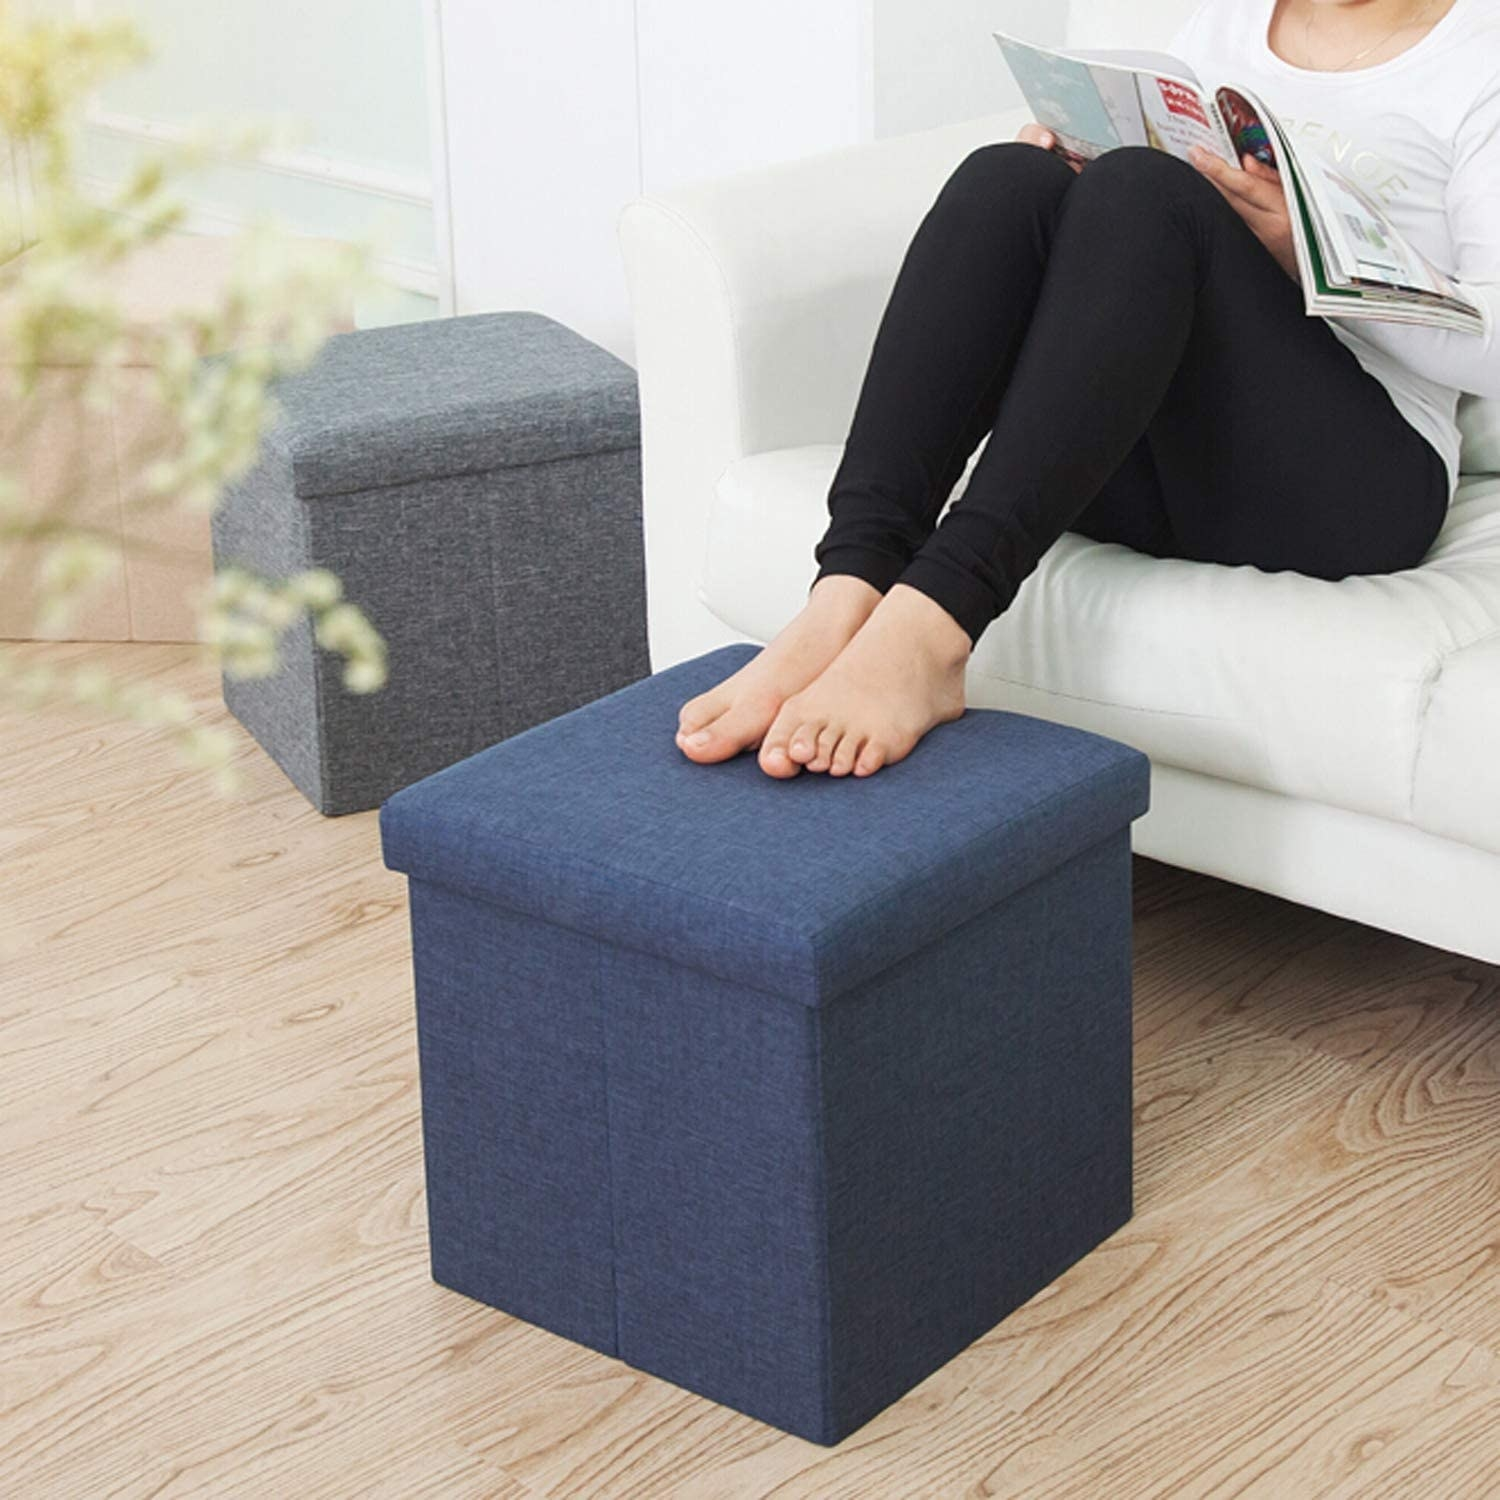 Person with feet up on a navy blue linen ottoman